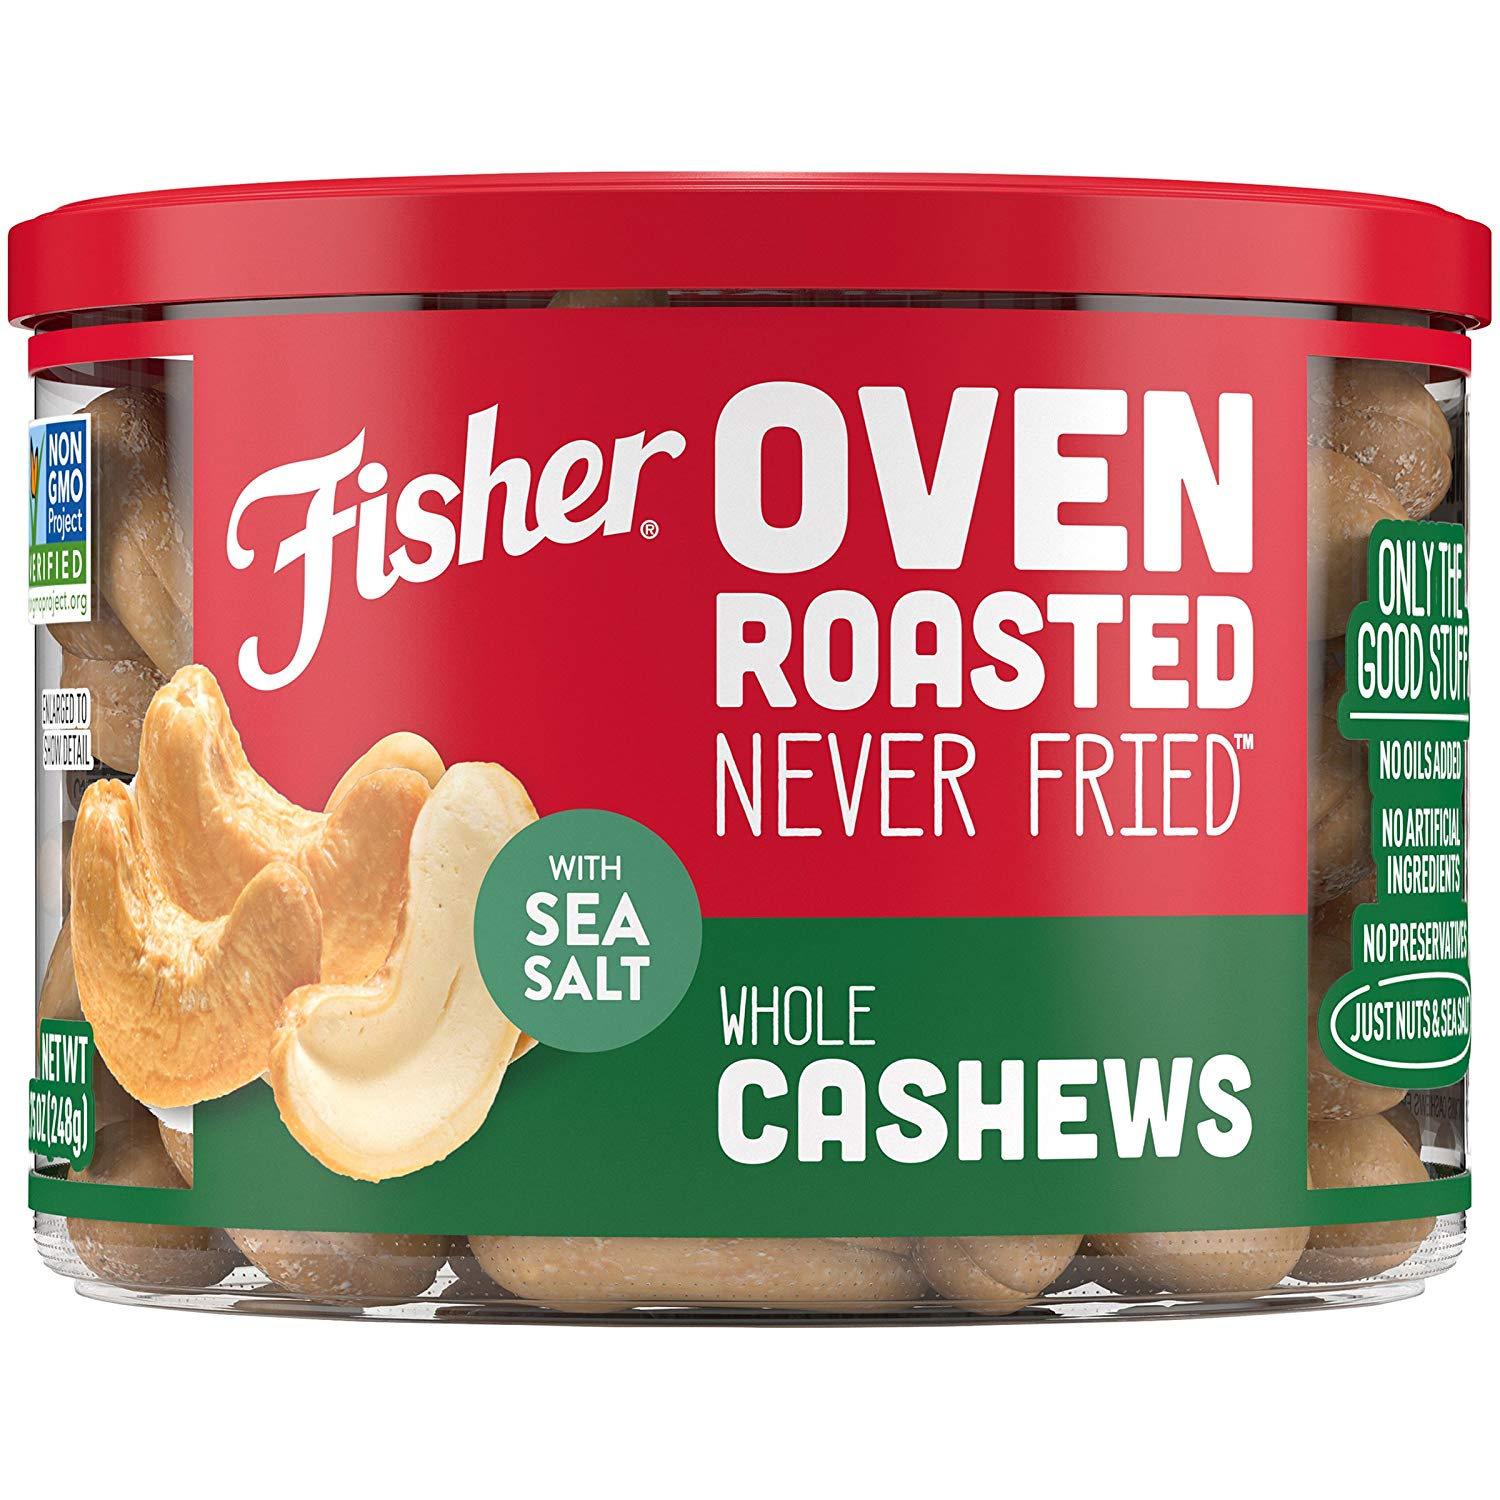 Fisher Snack Oven Roasted Never Fried Whole Cashews, 8.75 oz